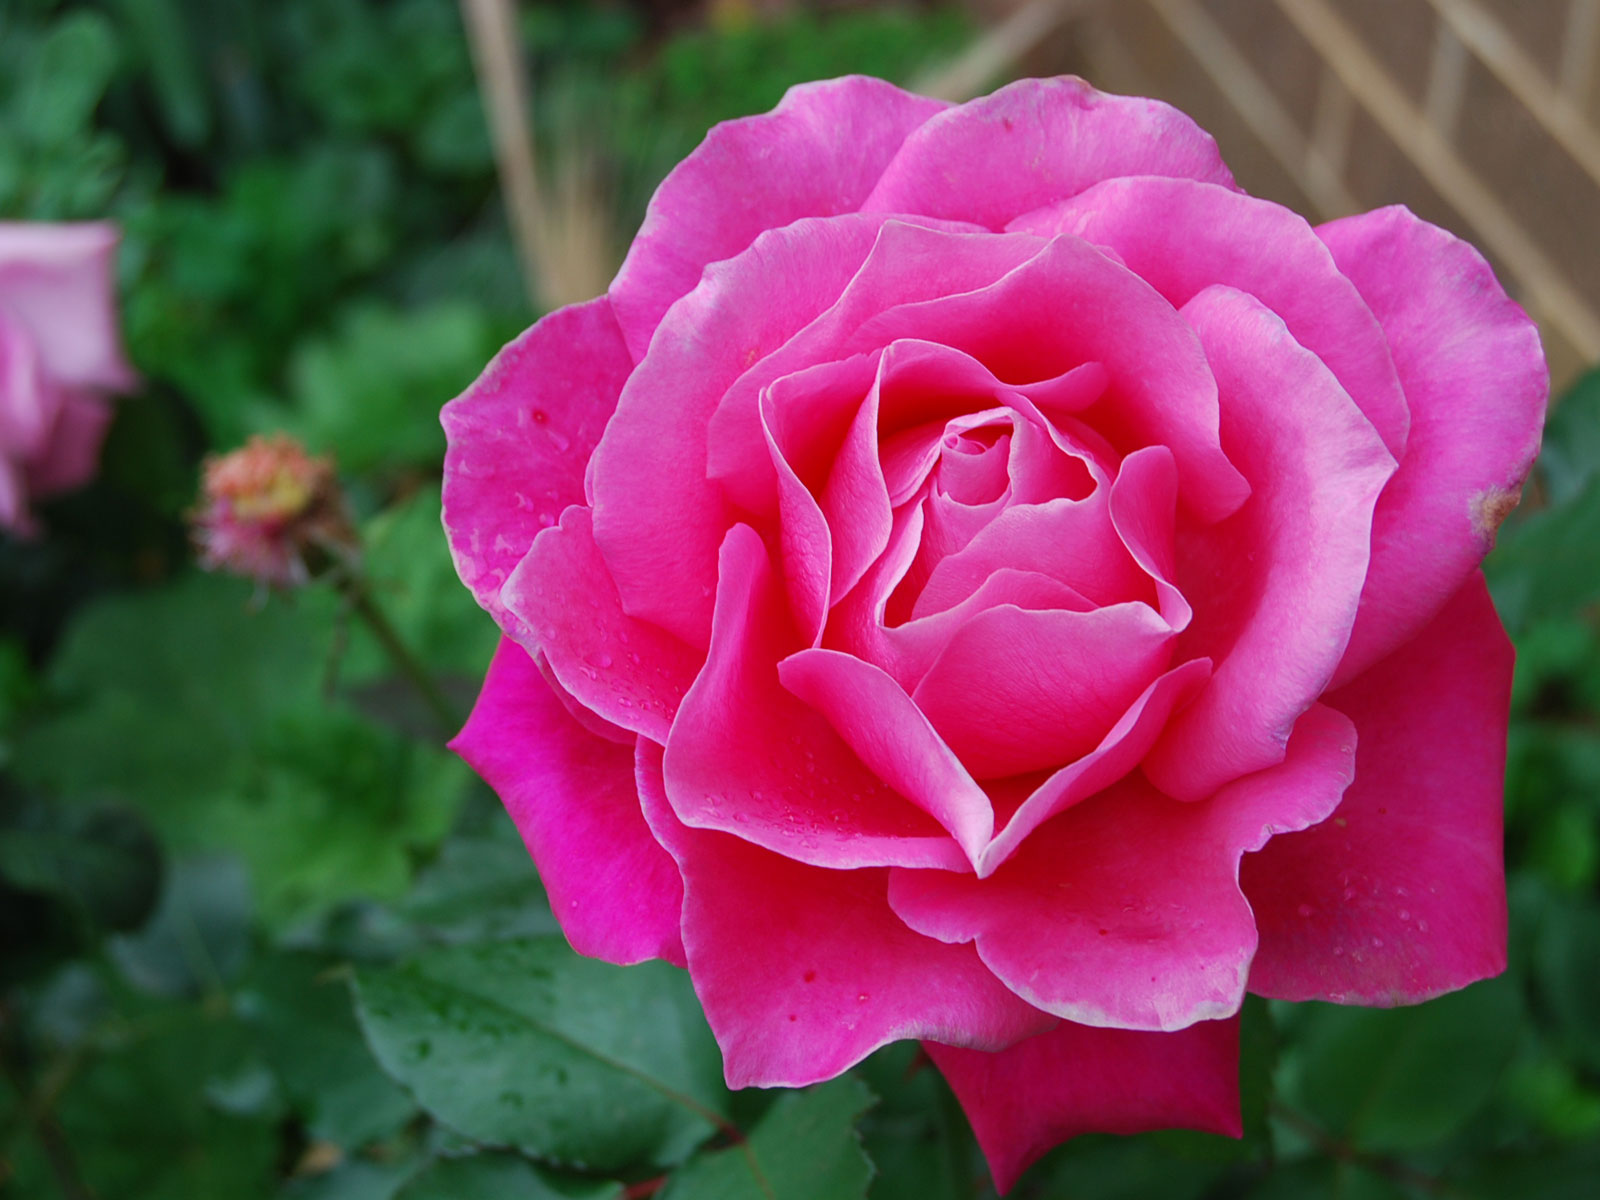 Pink rose hd wallpapers - Red flower desktop wallpaper ...